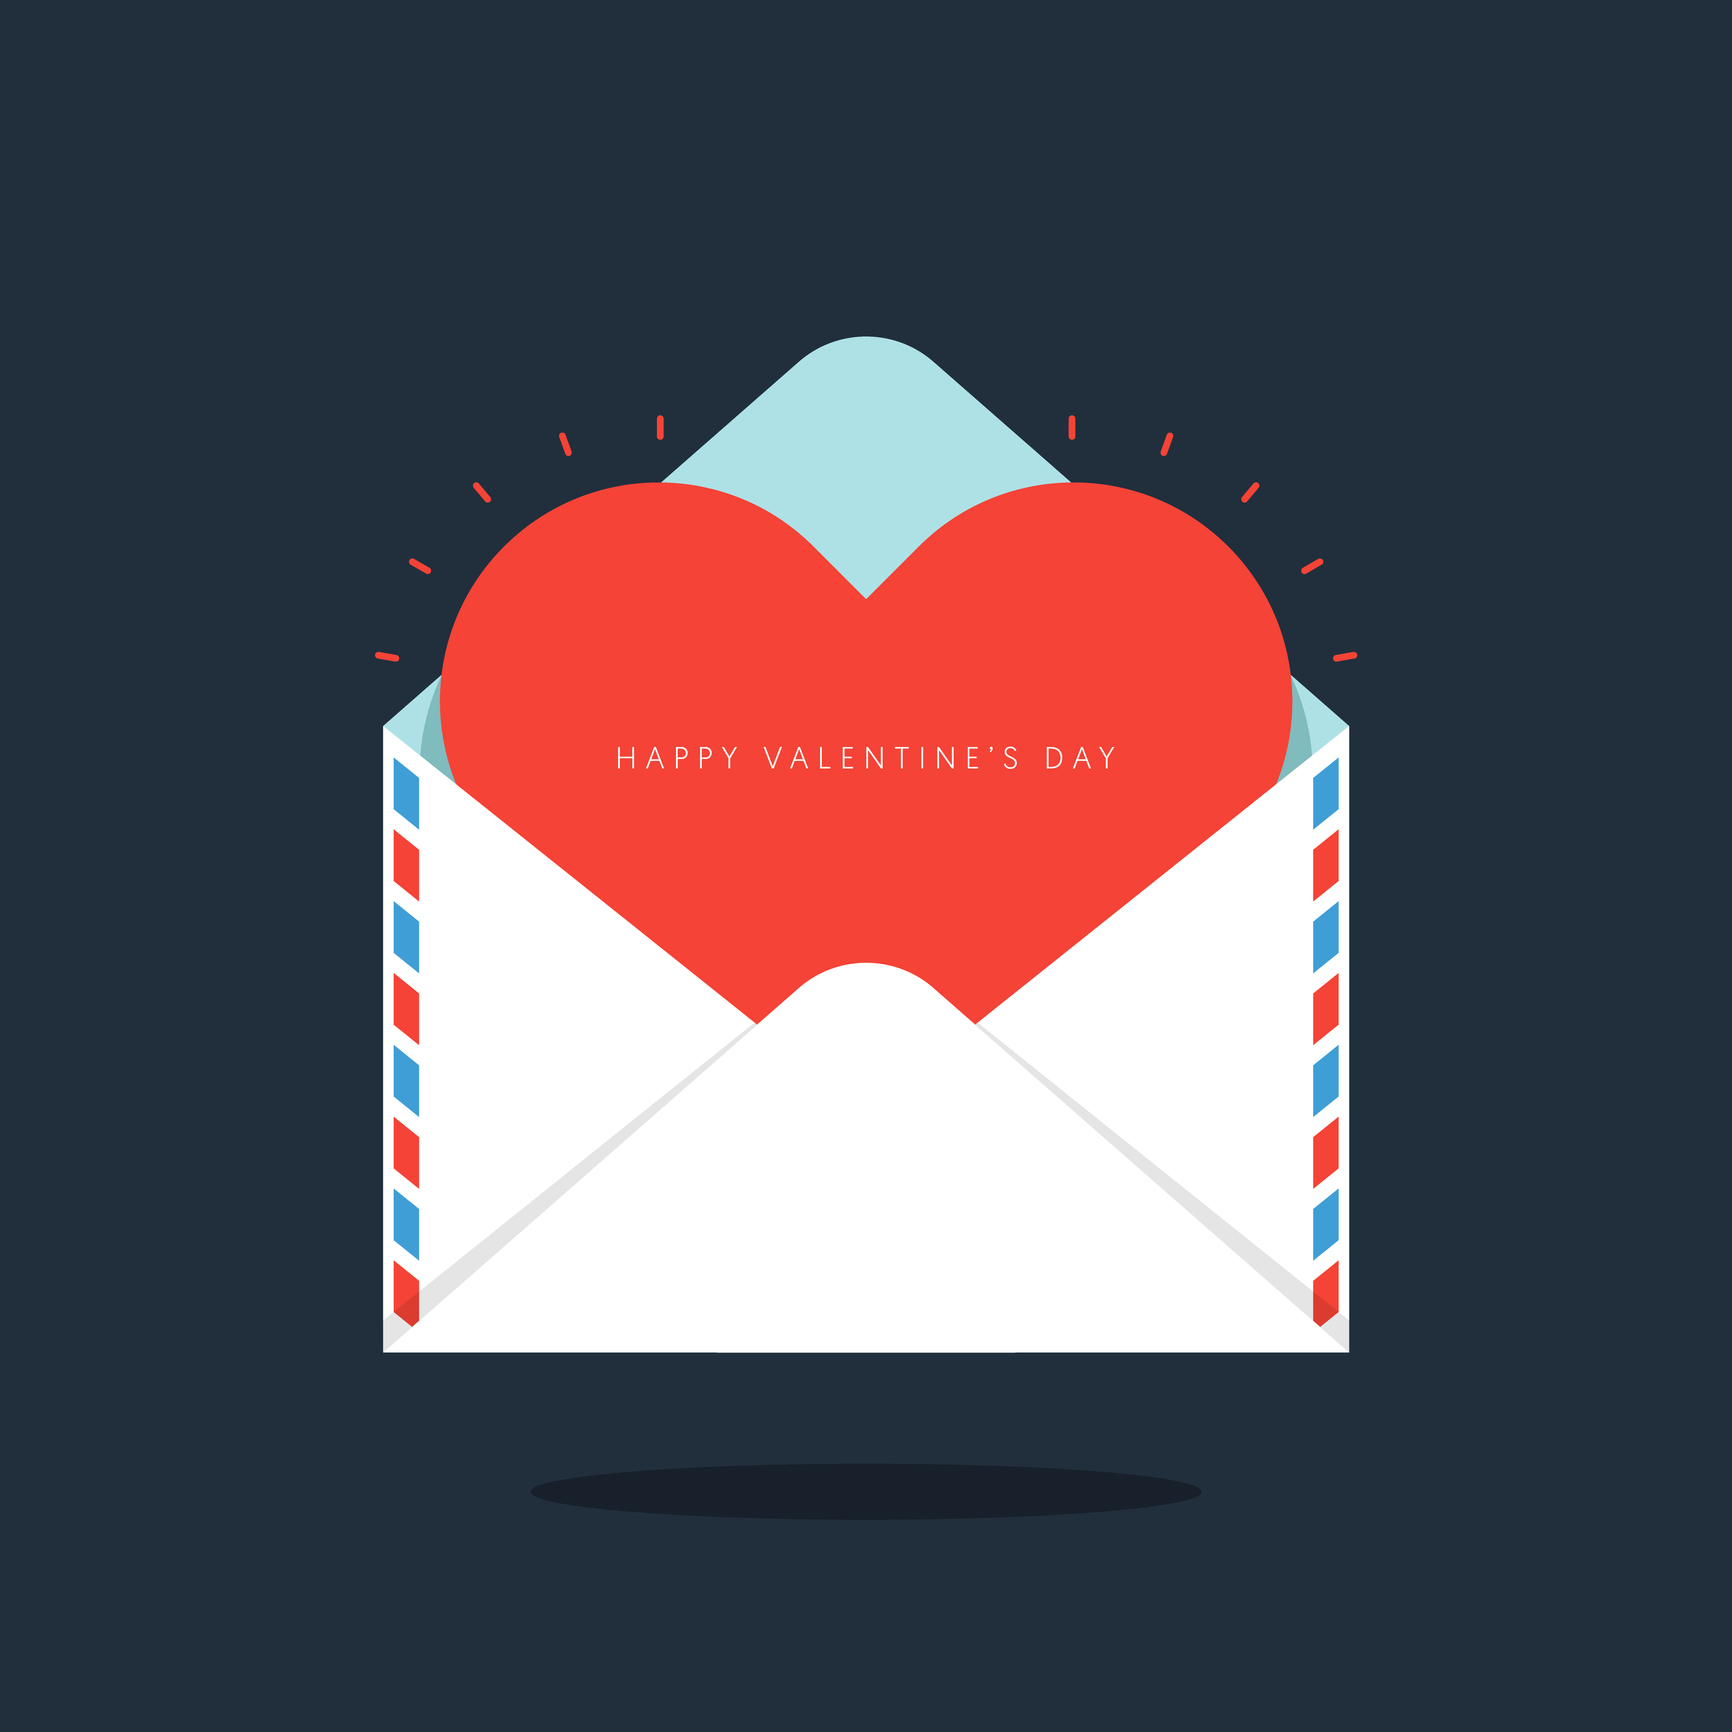 Red heart in envelope Valentine's day concept flat design. Design element can be used for background, poster, greeting card, brochure, leaflet, flyer, print, backdrop, vector illustration